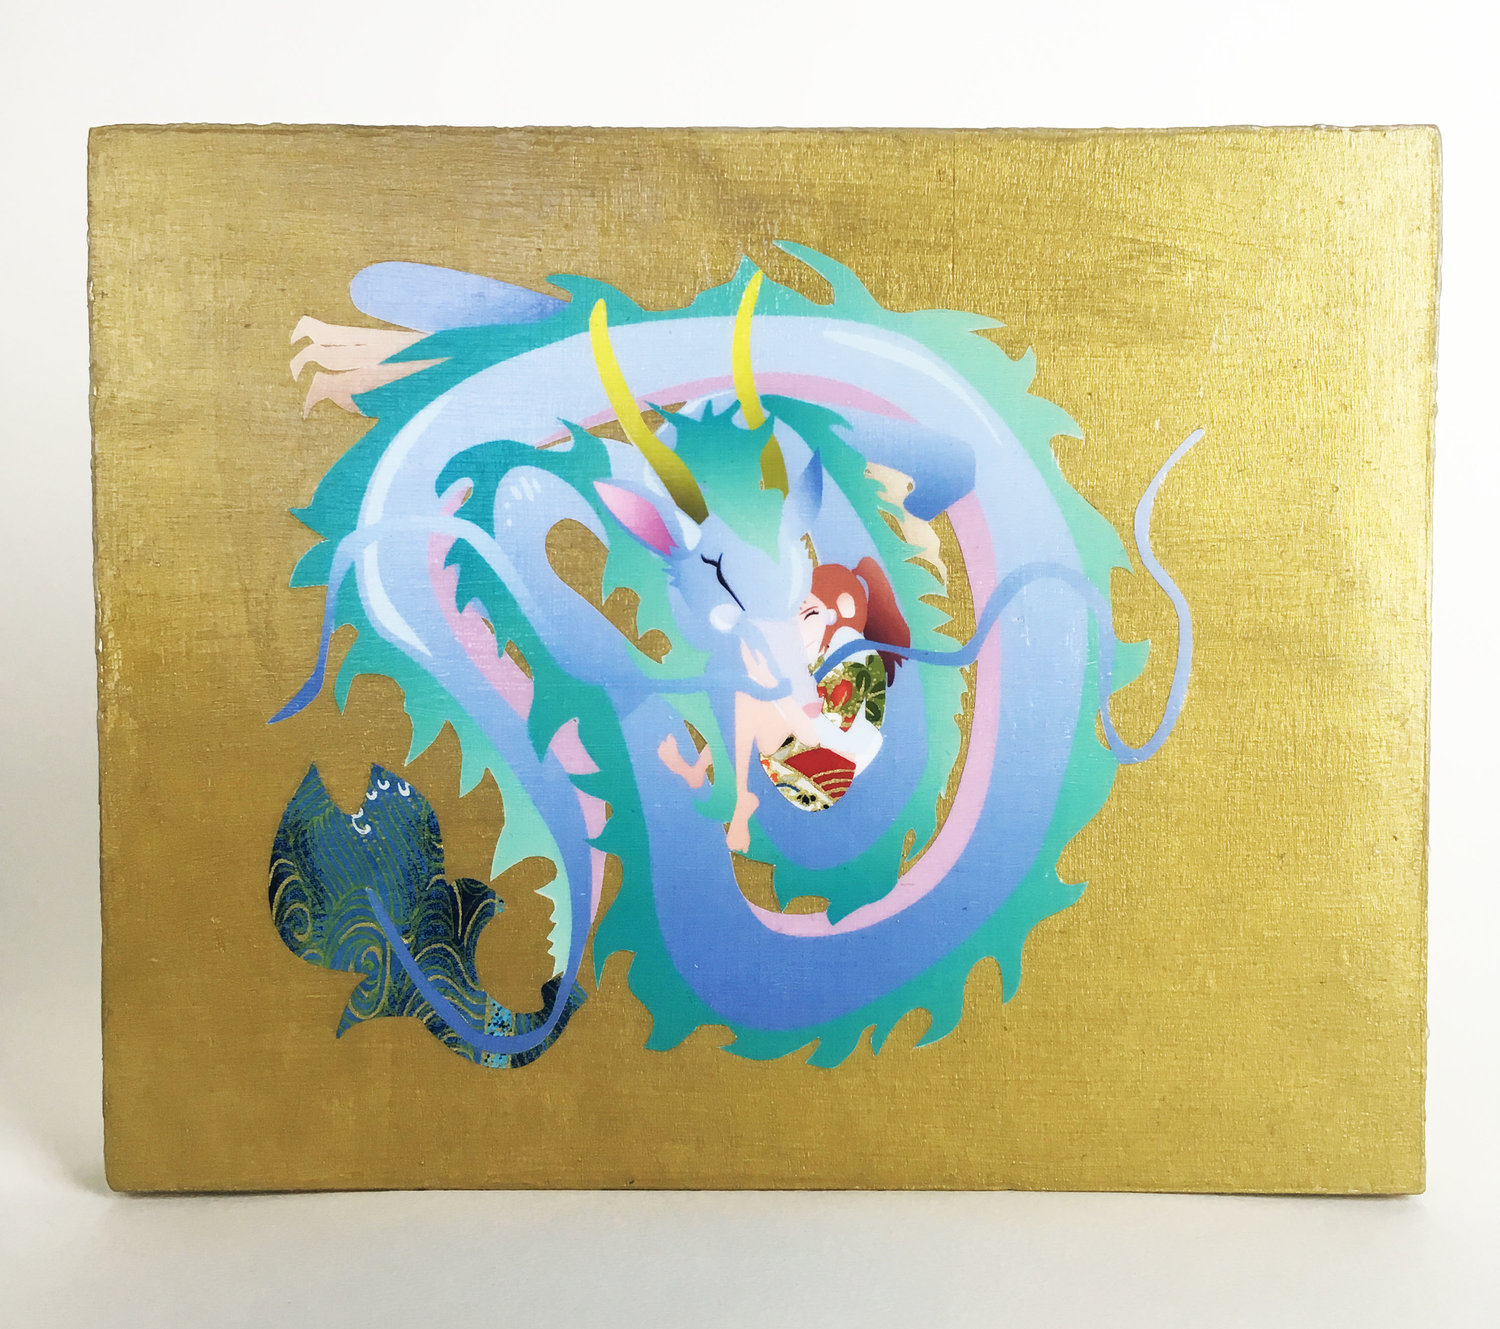 Studio Ghibli Spirited Away Haku Dragon Cuddle Chihiro Wall Hanging ...